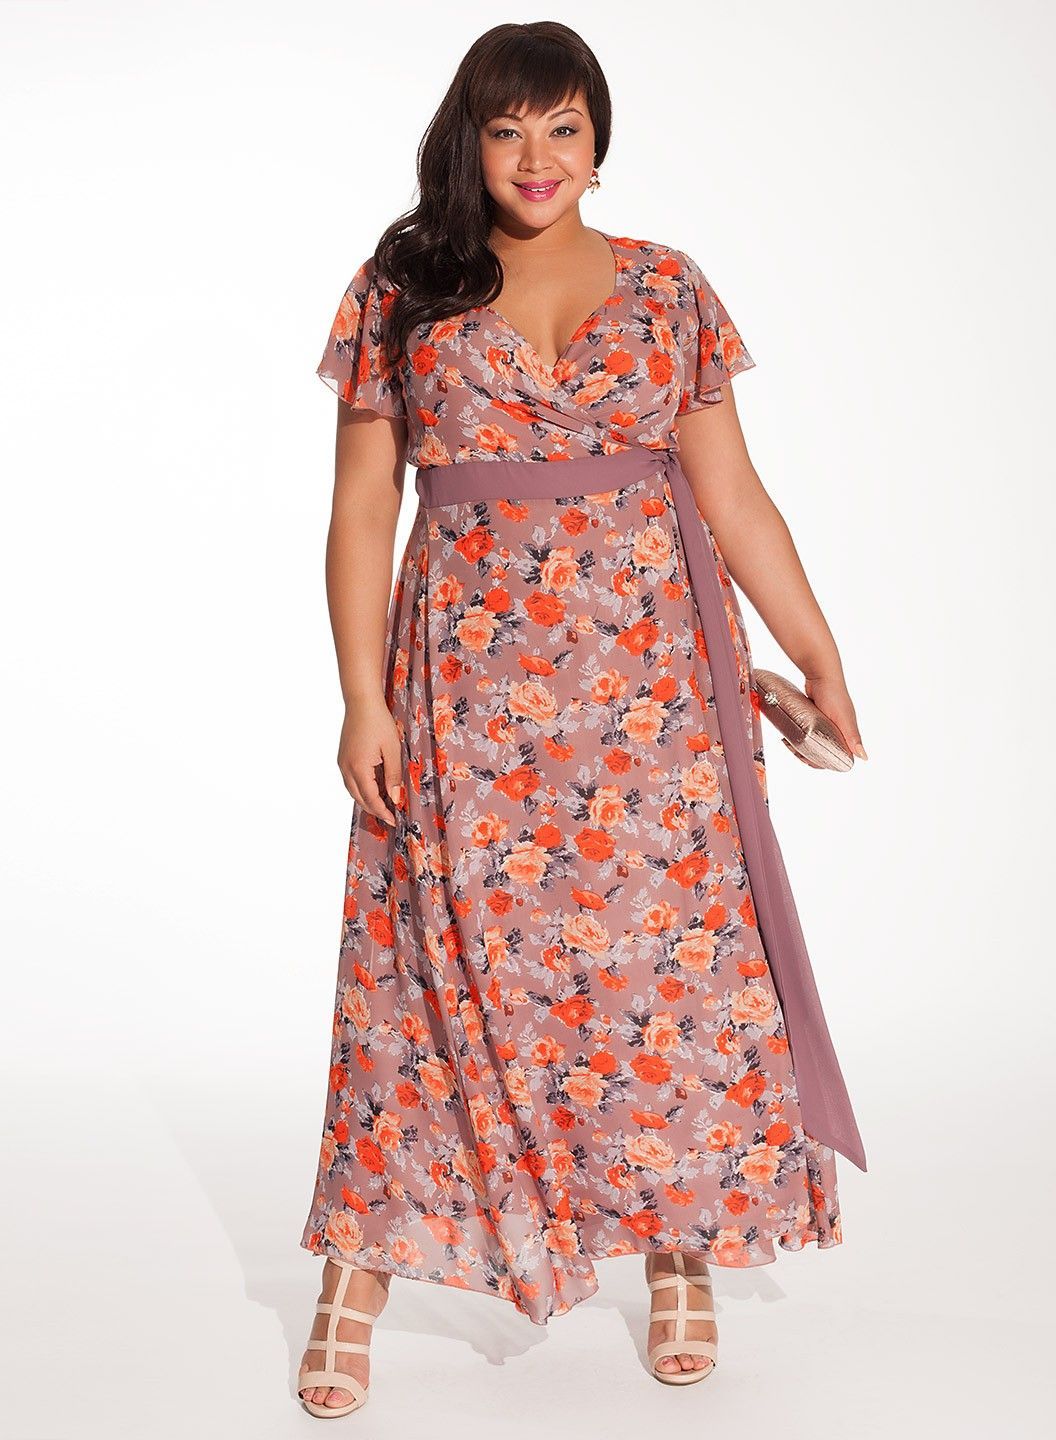 womens plus size spring dresses image collections - dresses design